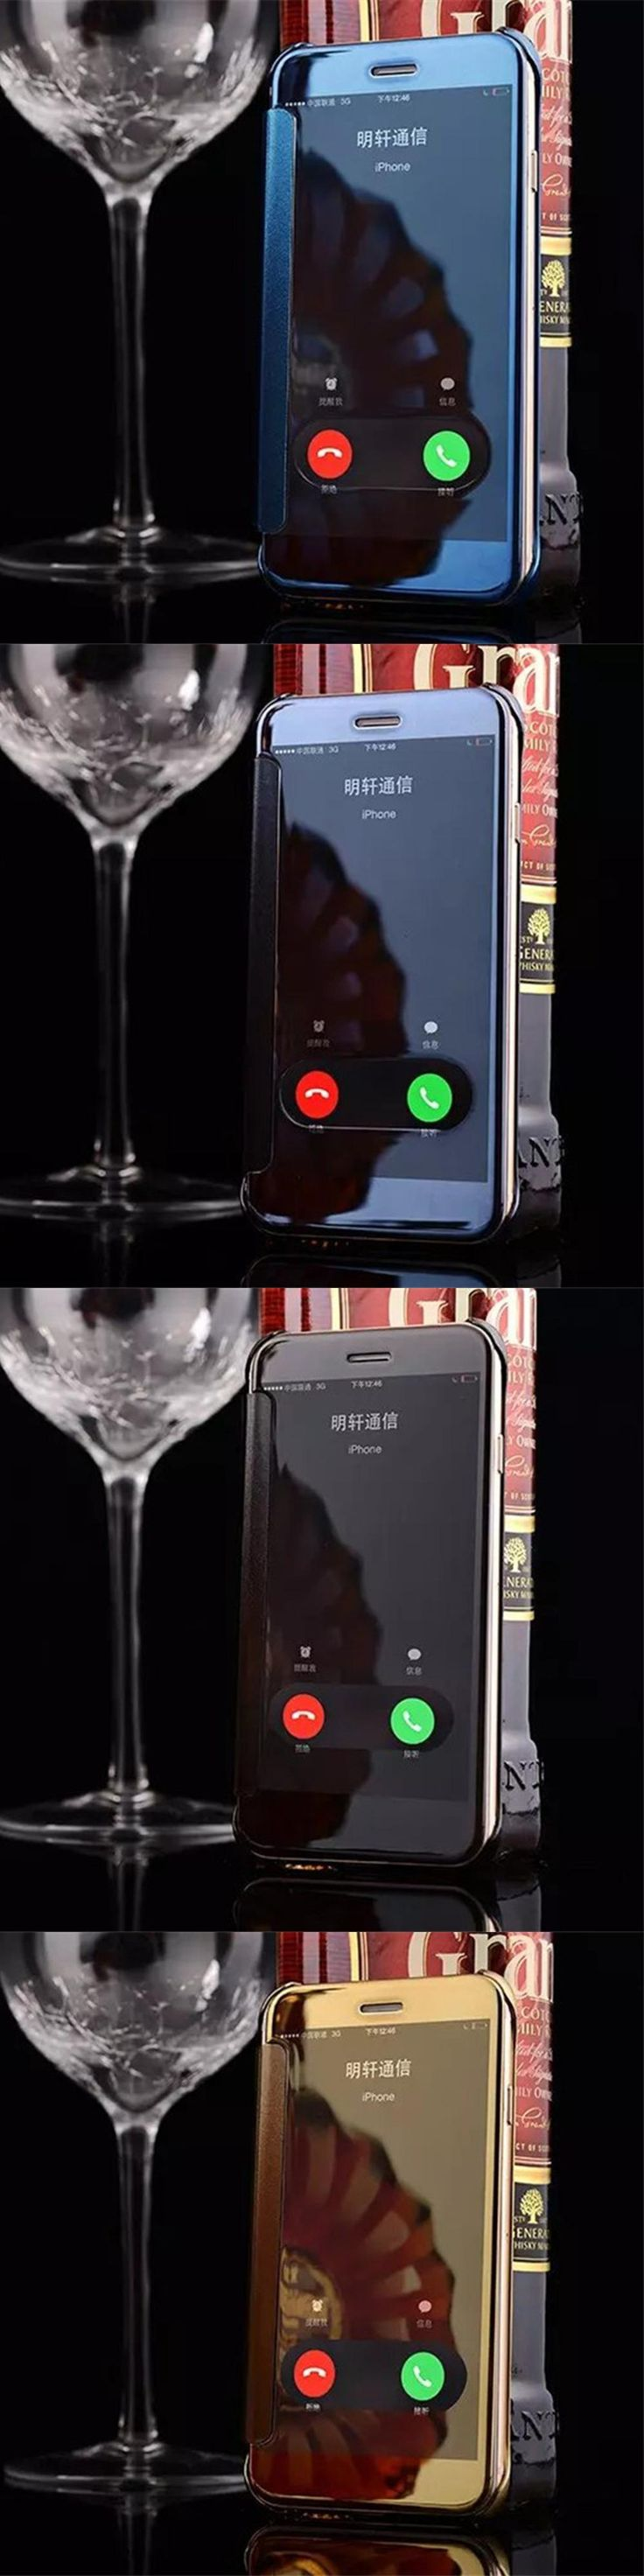 Luxury View Window Flip phone cover case For Apple iPhone 6 6s/6 6s plus Clean Mirror Hard PC Plastic PU Leather phone shell